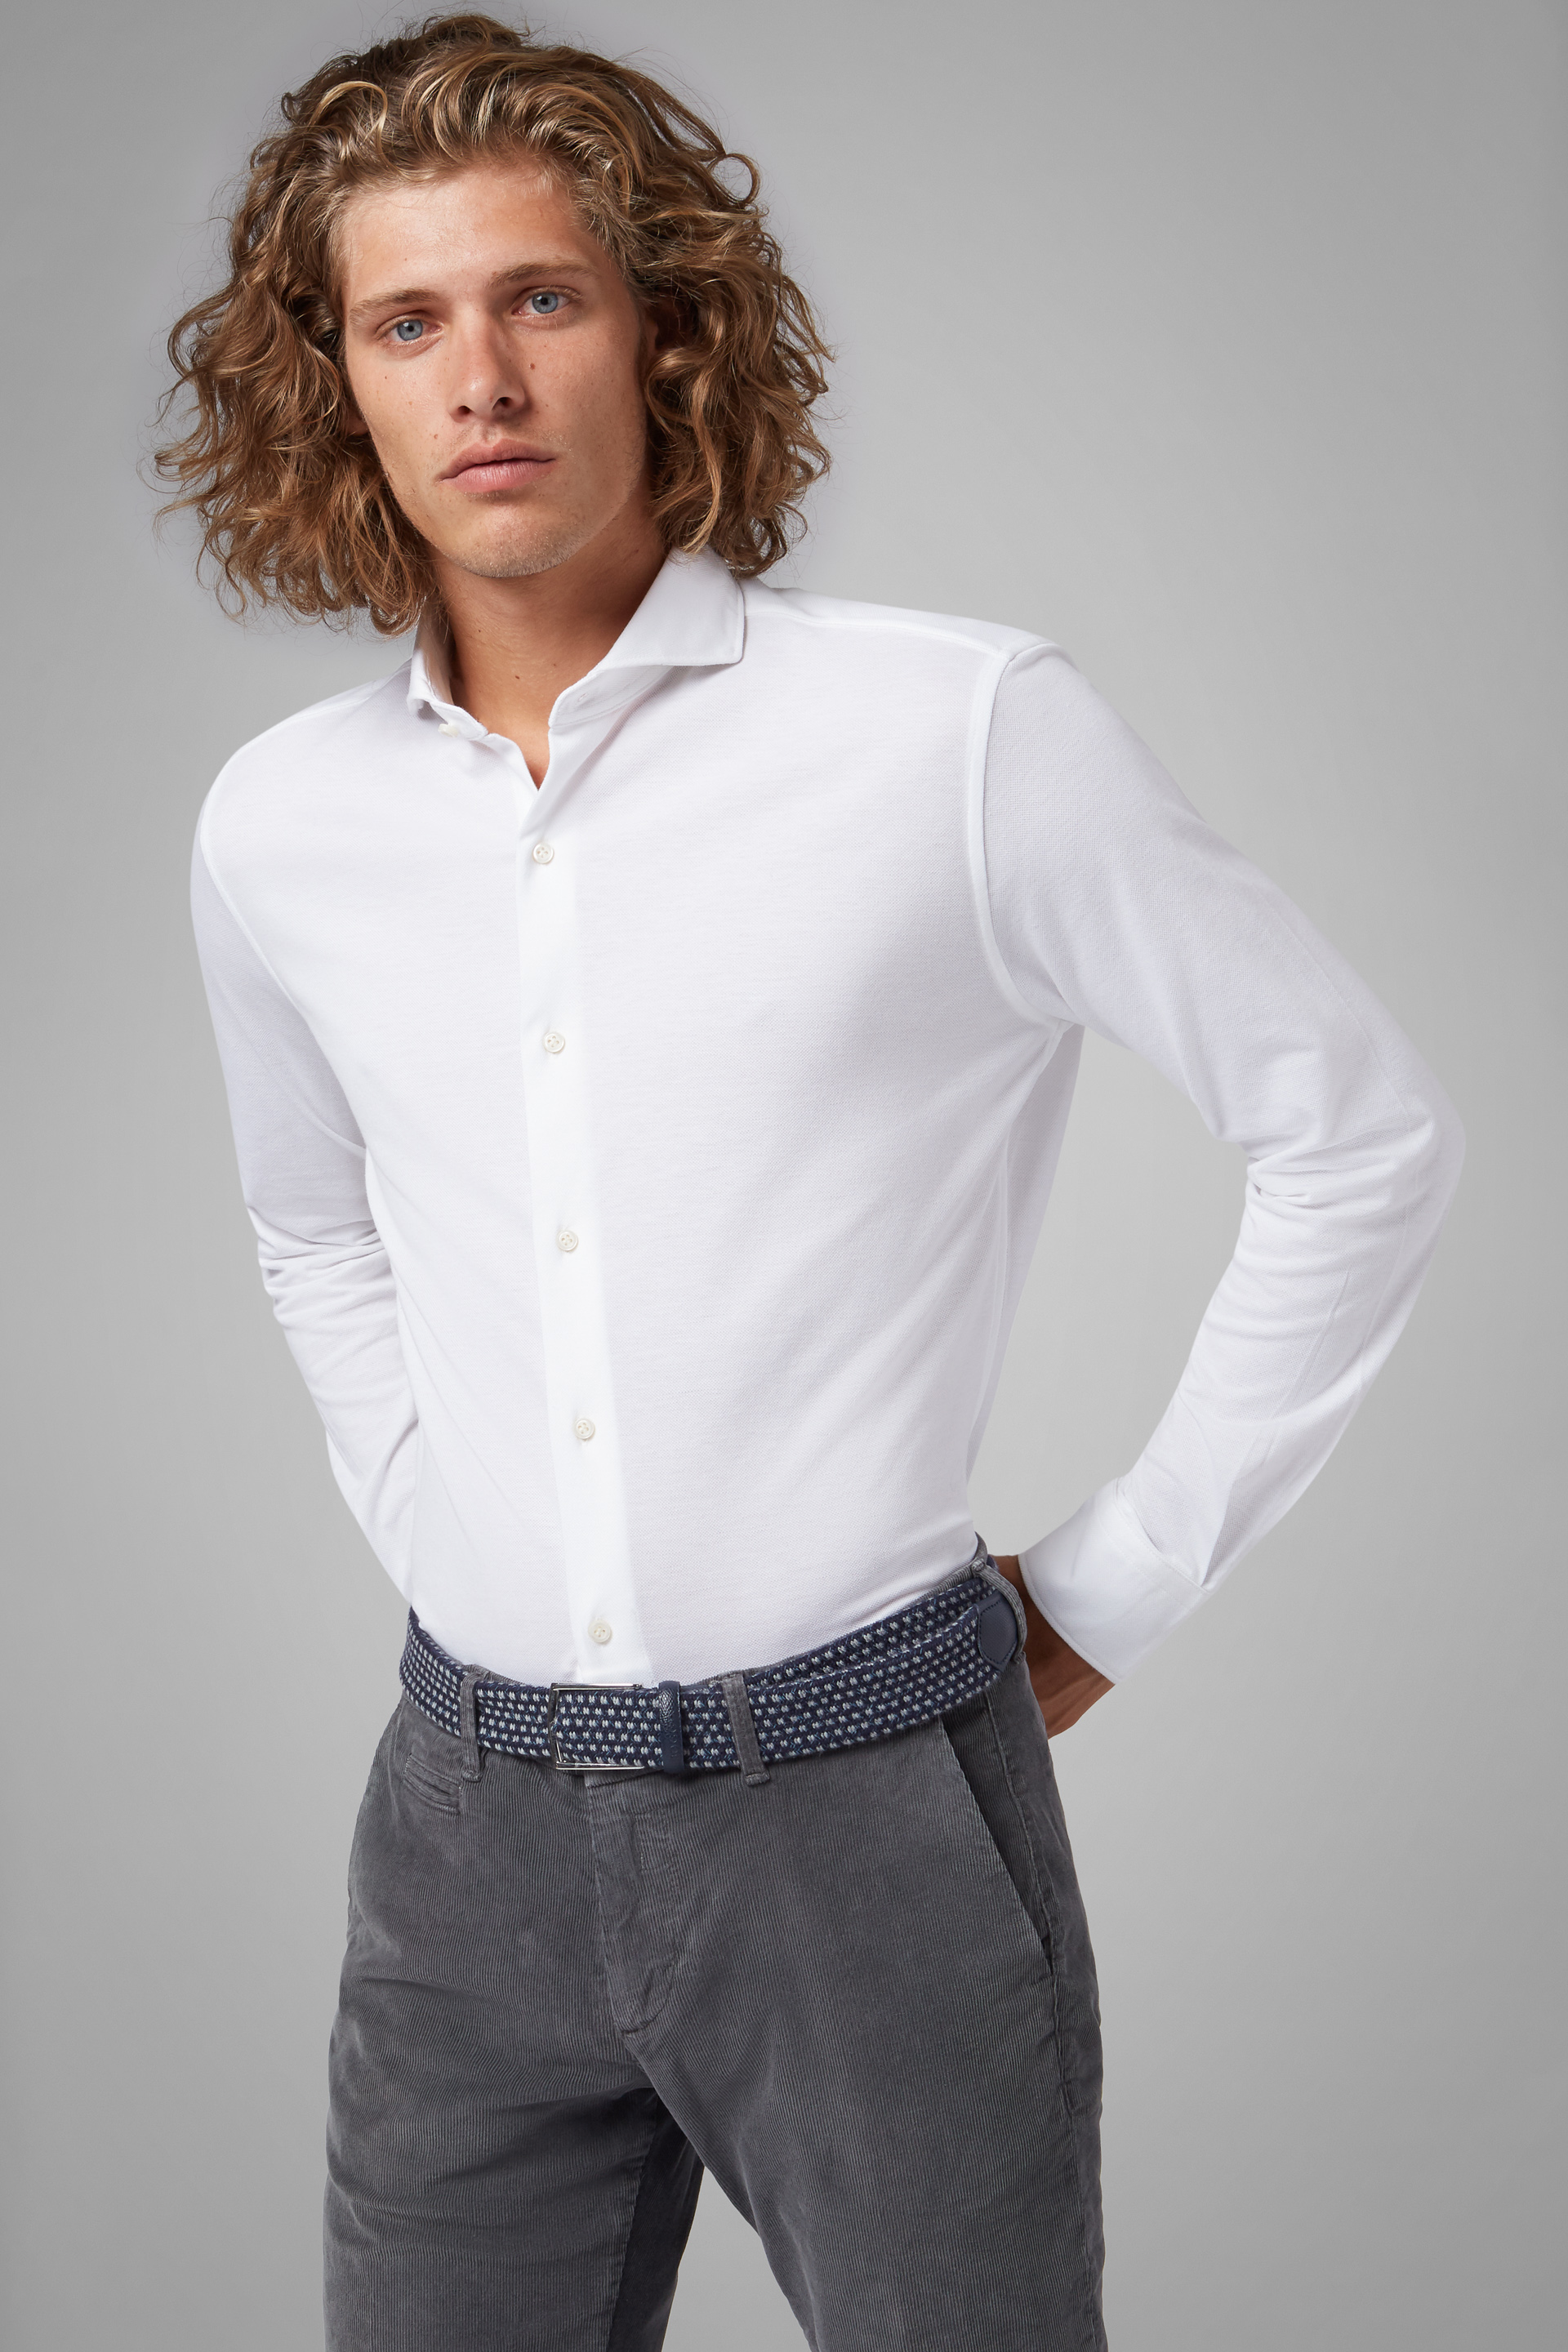 Camisa Polo Boggi Regular Fit Blanca Con Cuello Abierto